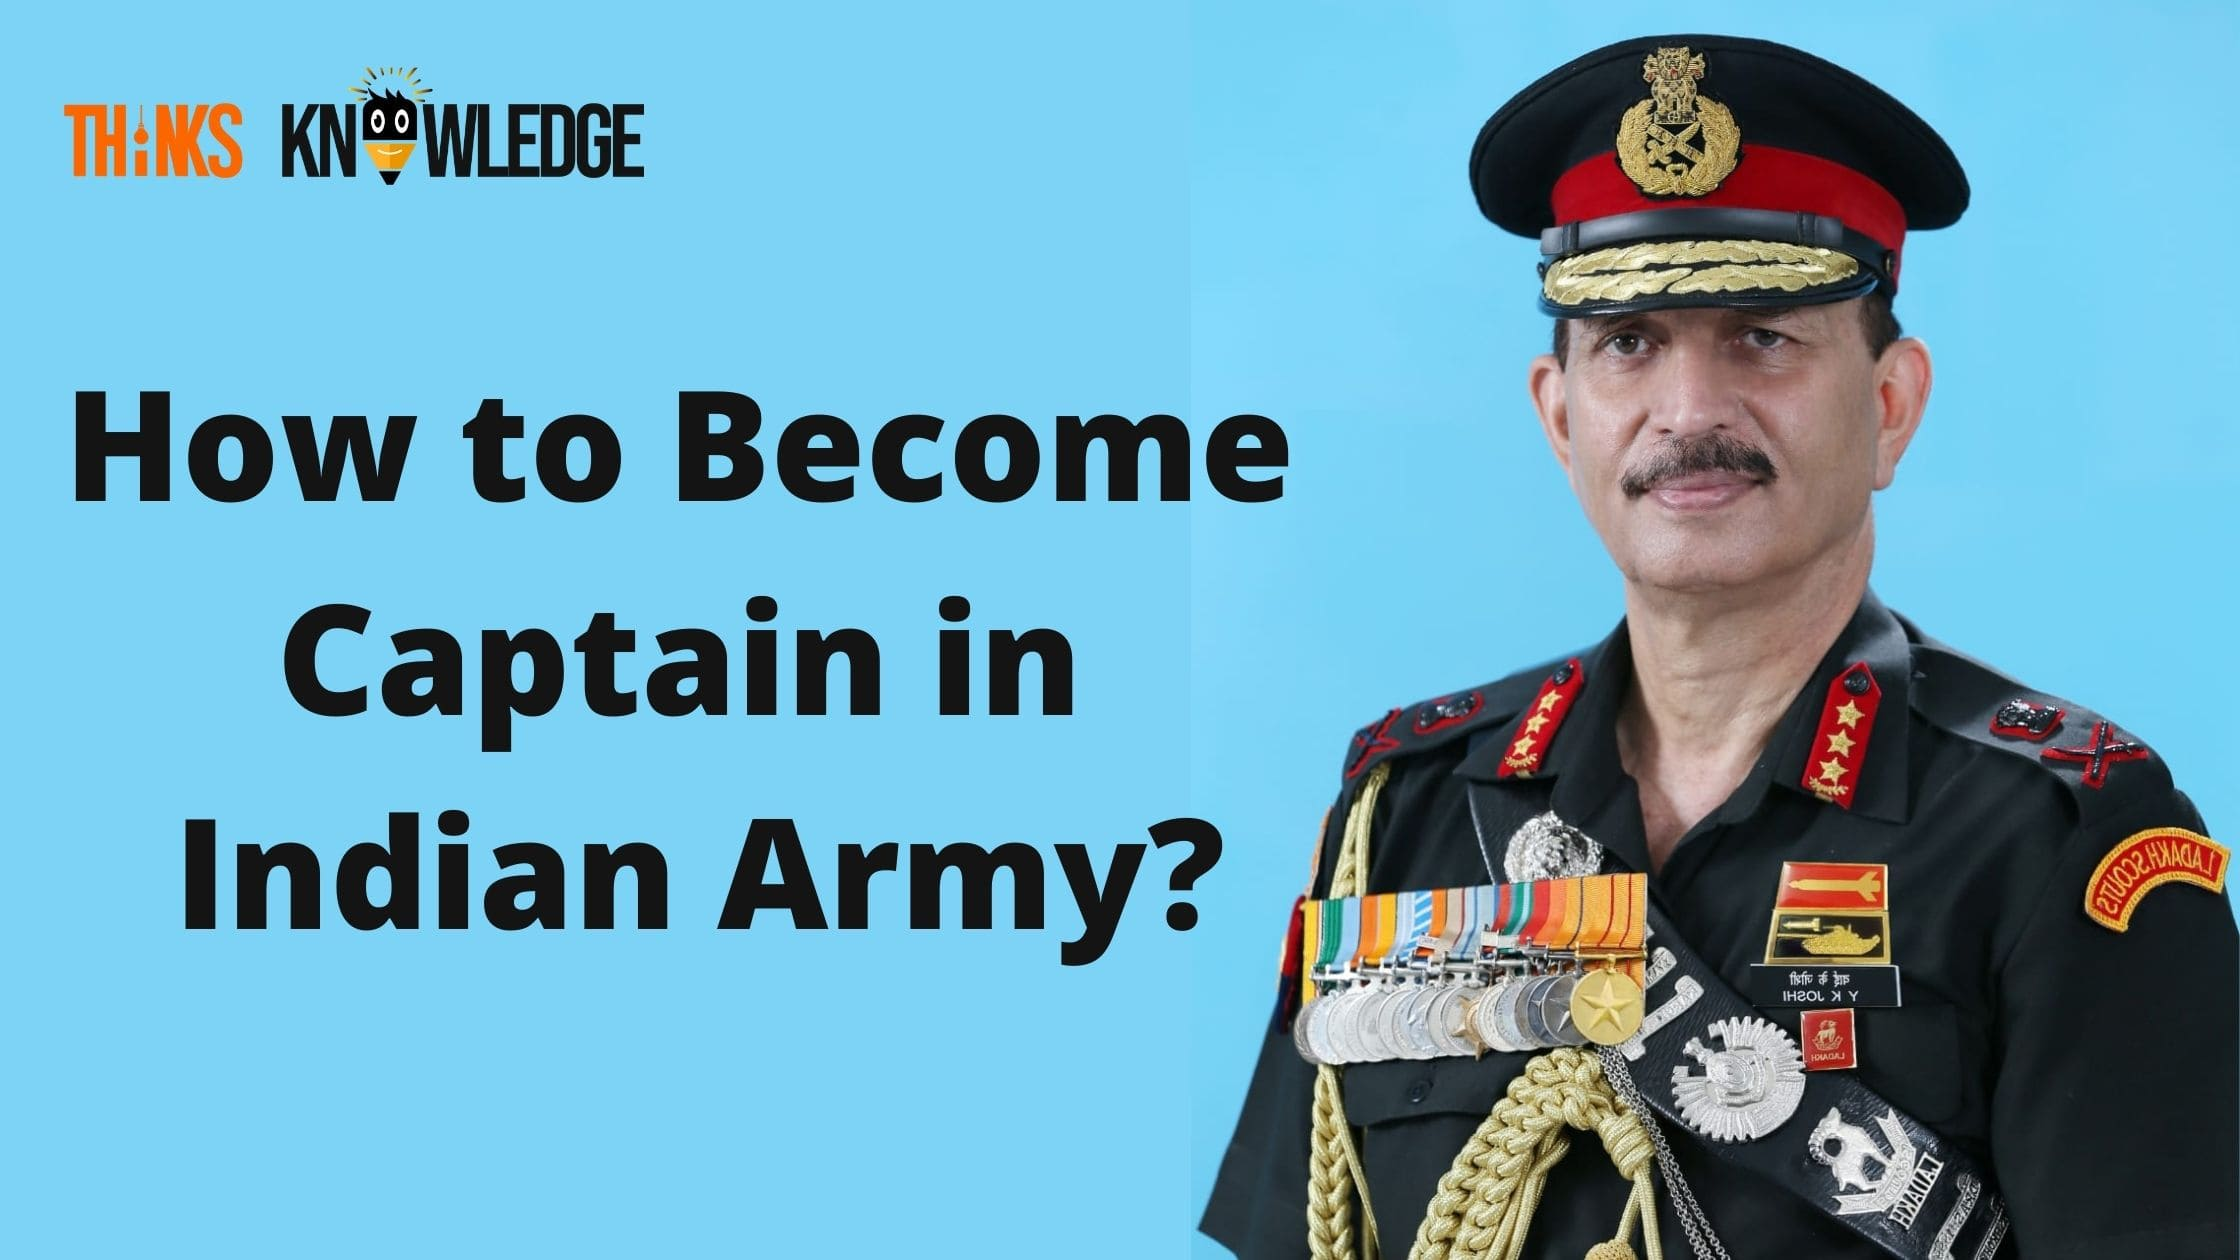 How to Become Captain in Indian Army